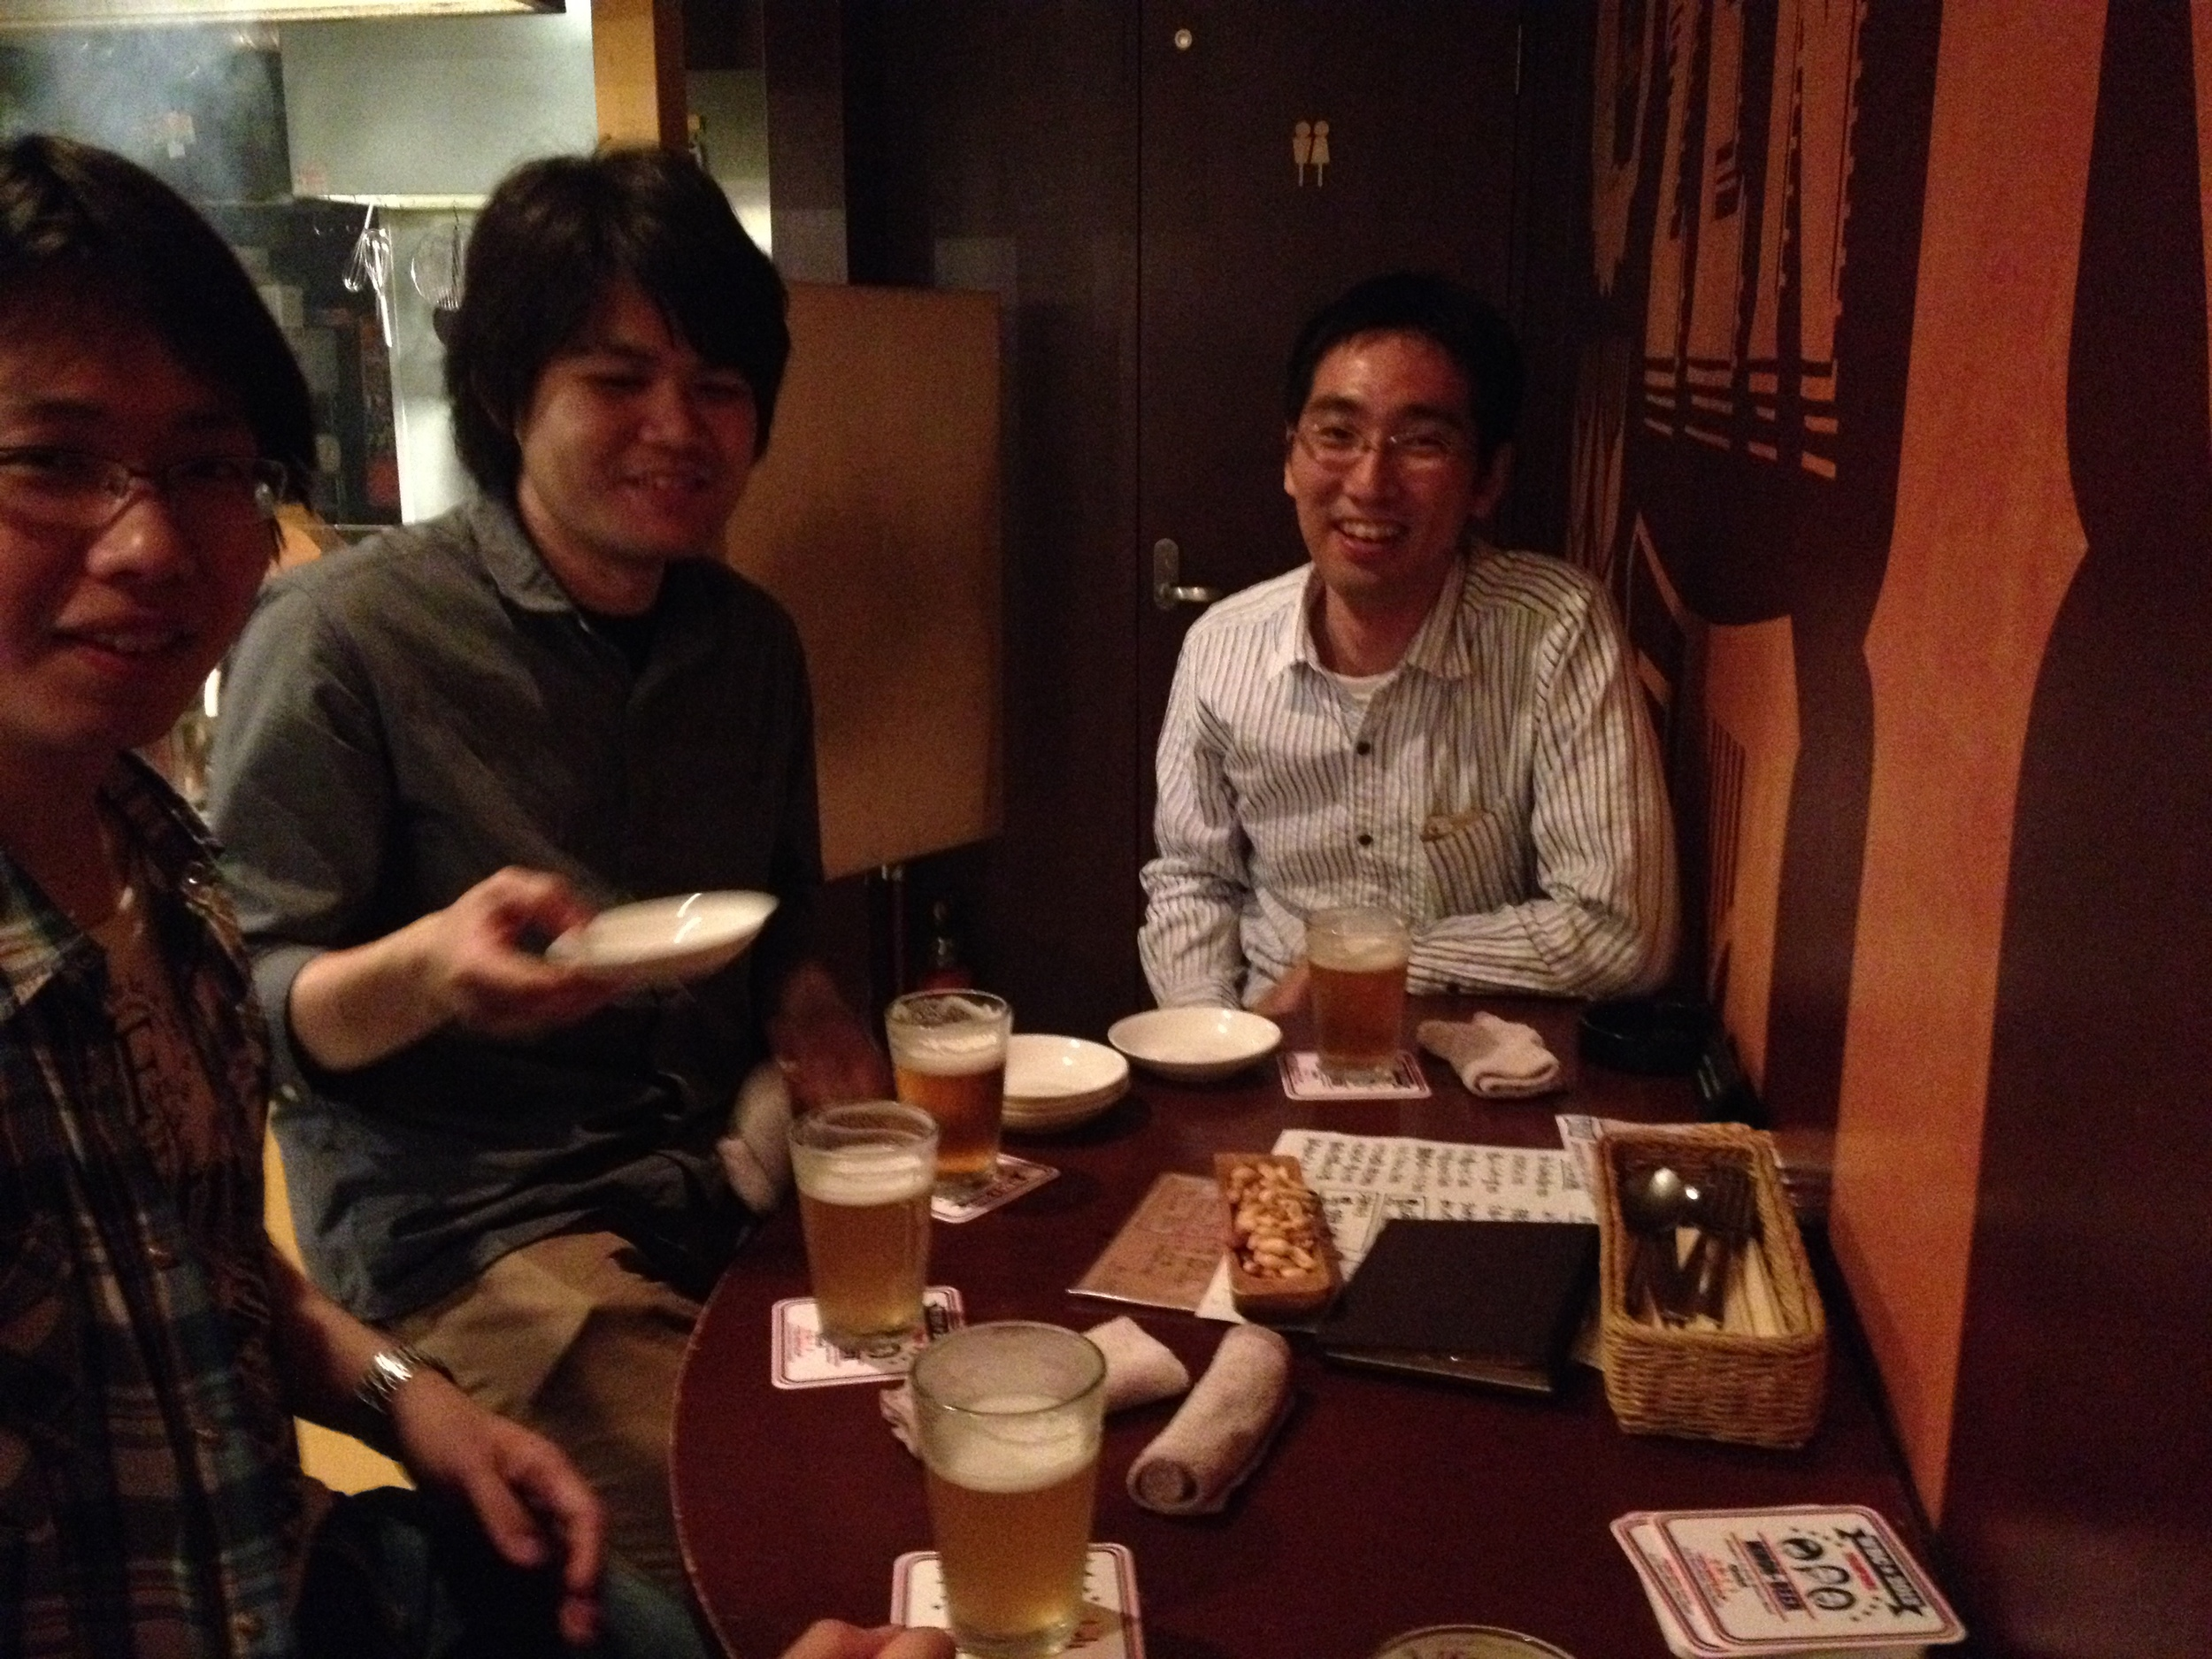 Thank you very much for Okuno Sensei treating us this dinner!